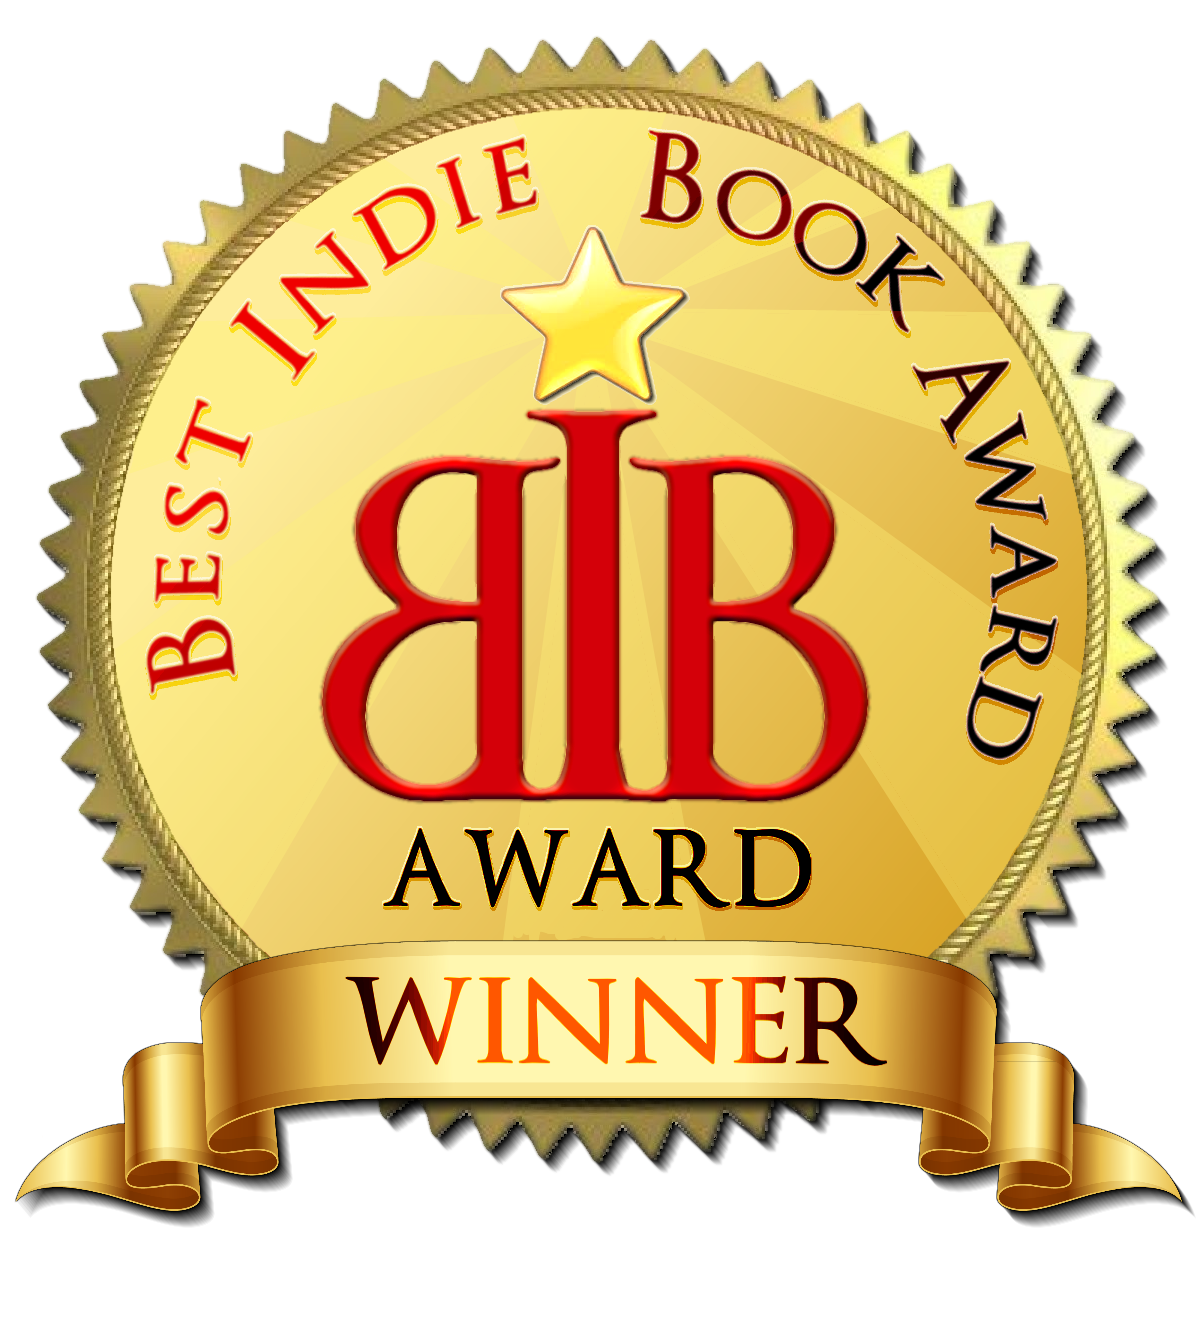 Award transparent official. The best indie book